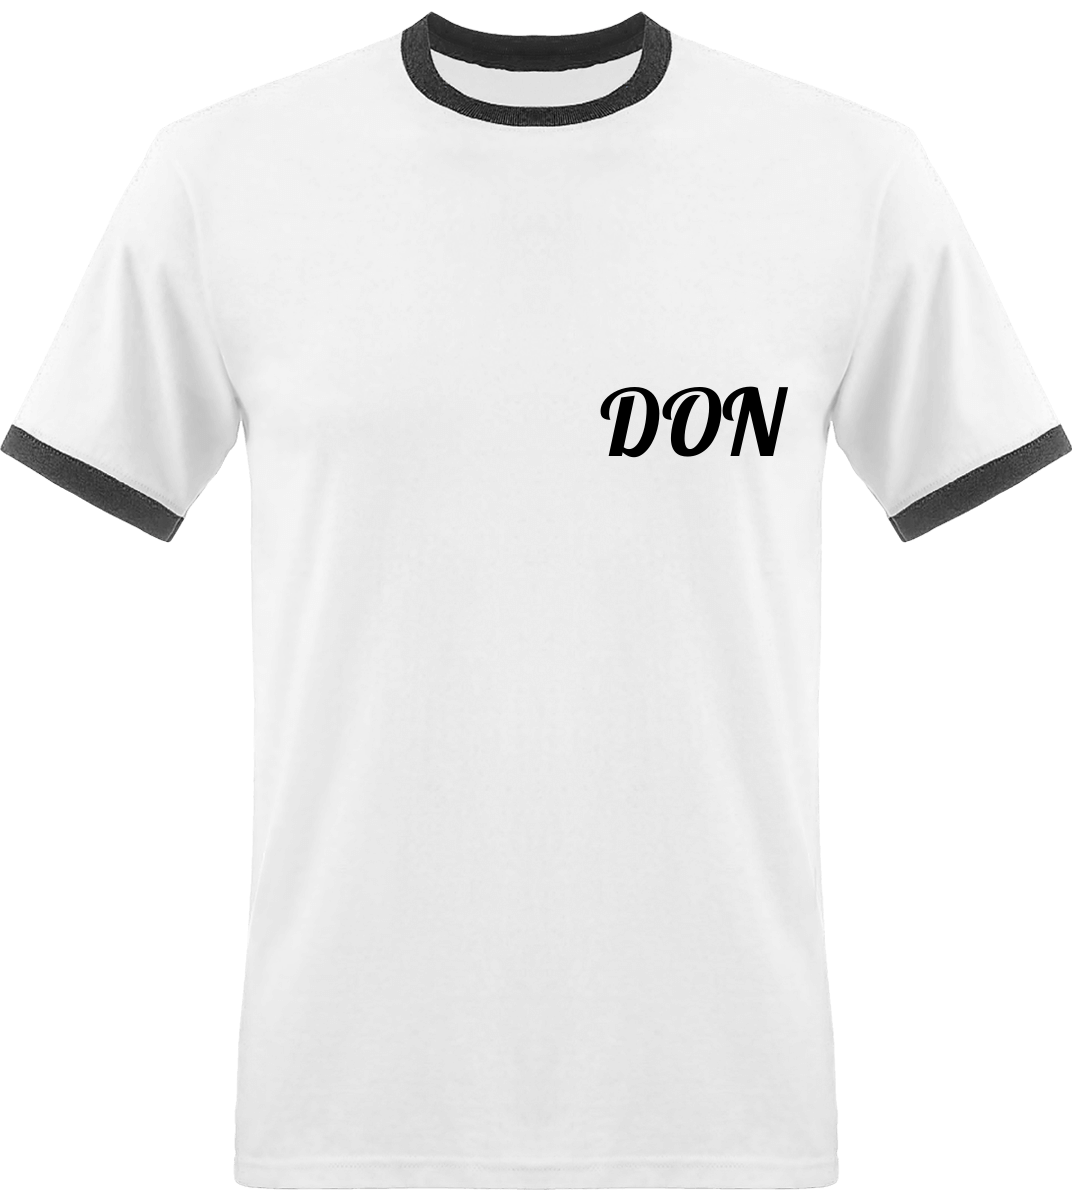 Mens Official Don T-Shirt - White / Black / S - Homme>Tee-Shirts